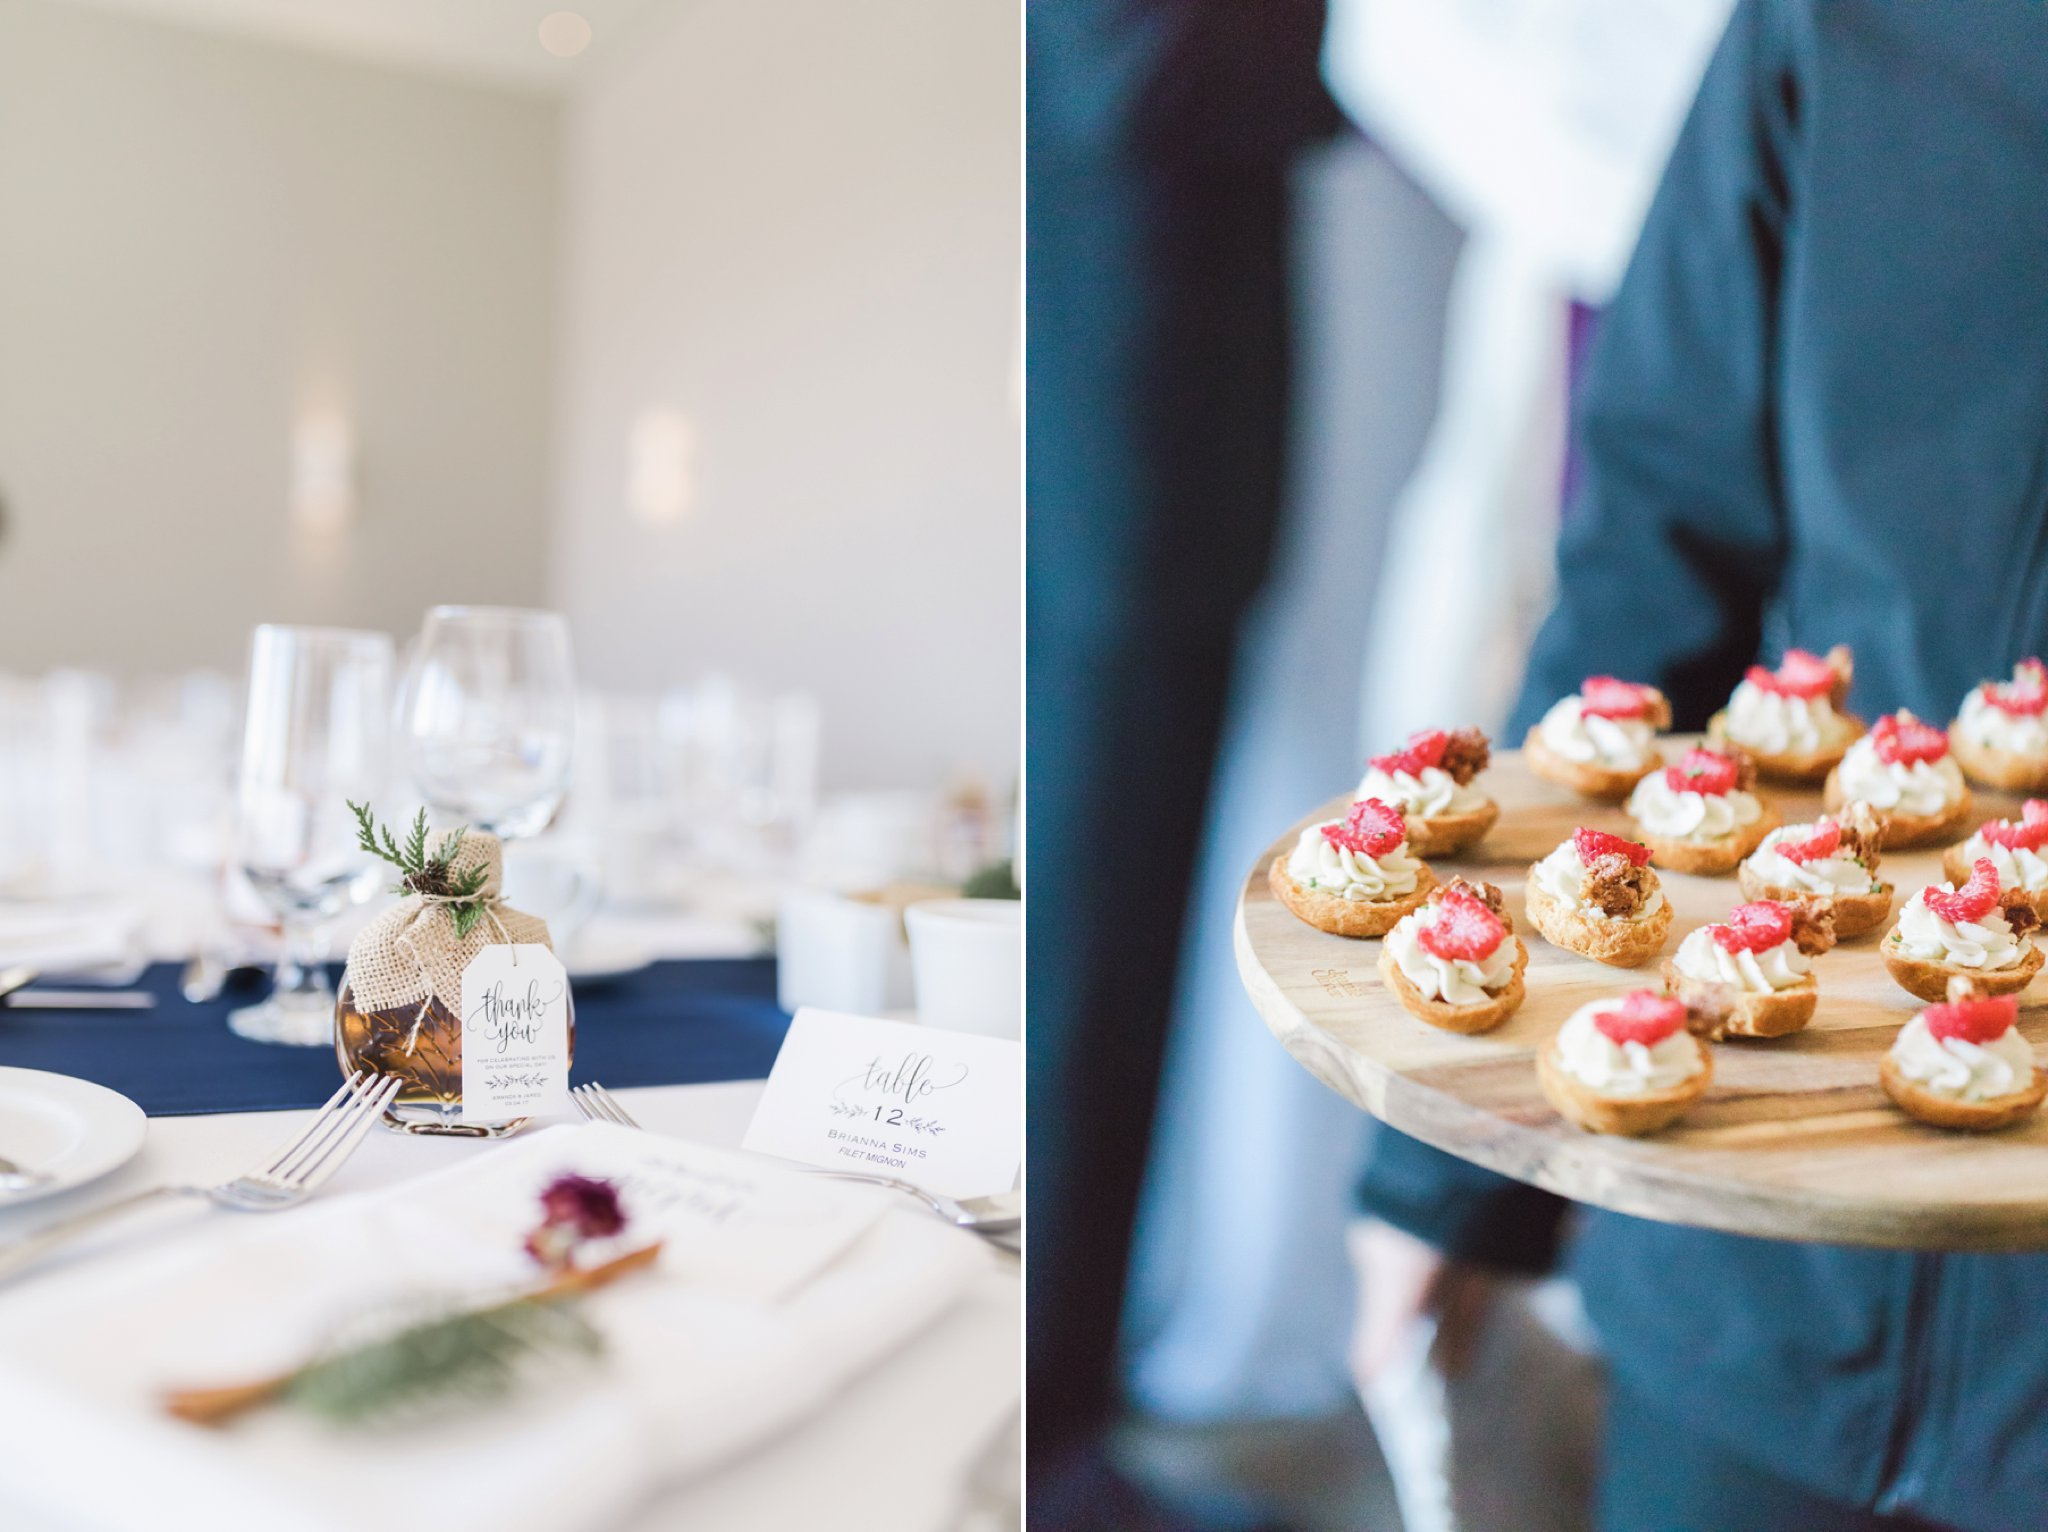 Appetizers and maple syrup favours at the Winter wedding at Le Belvedere